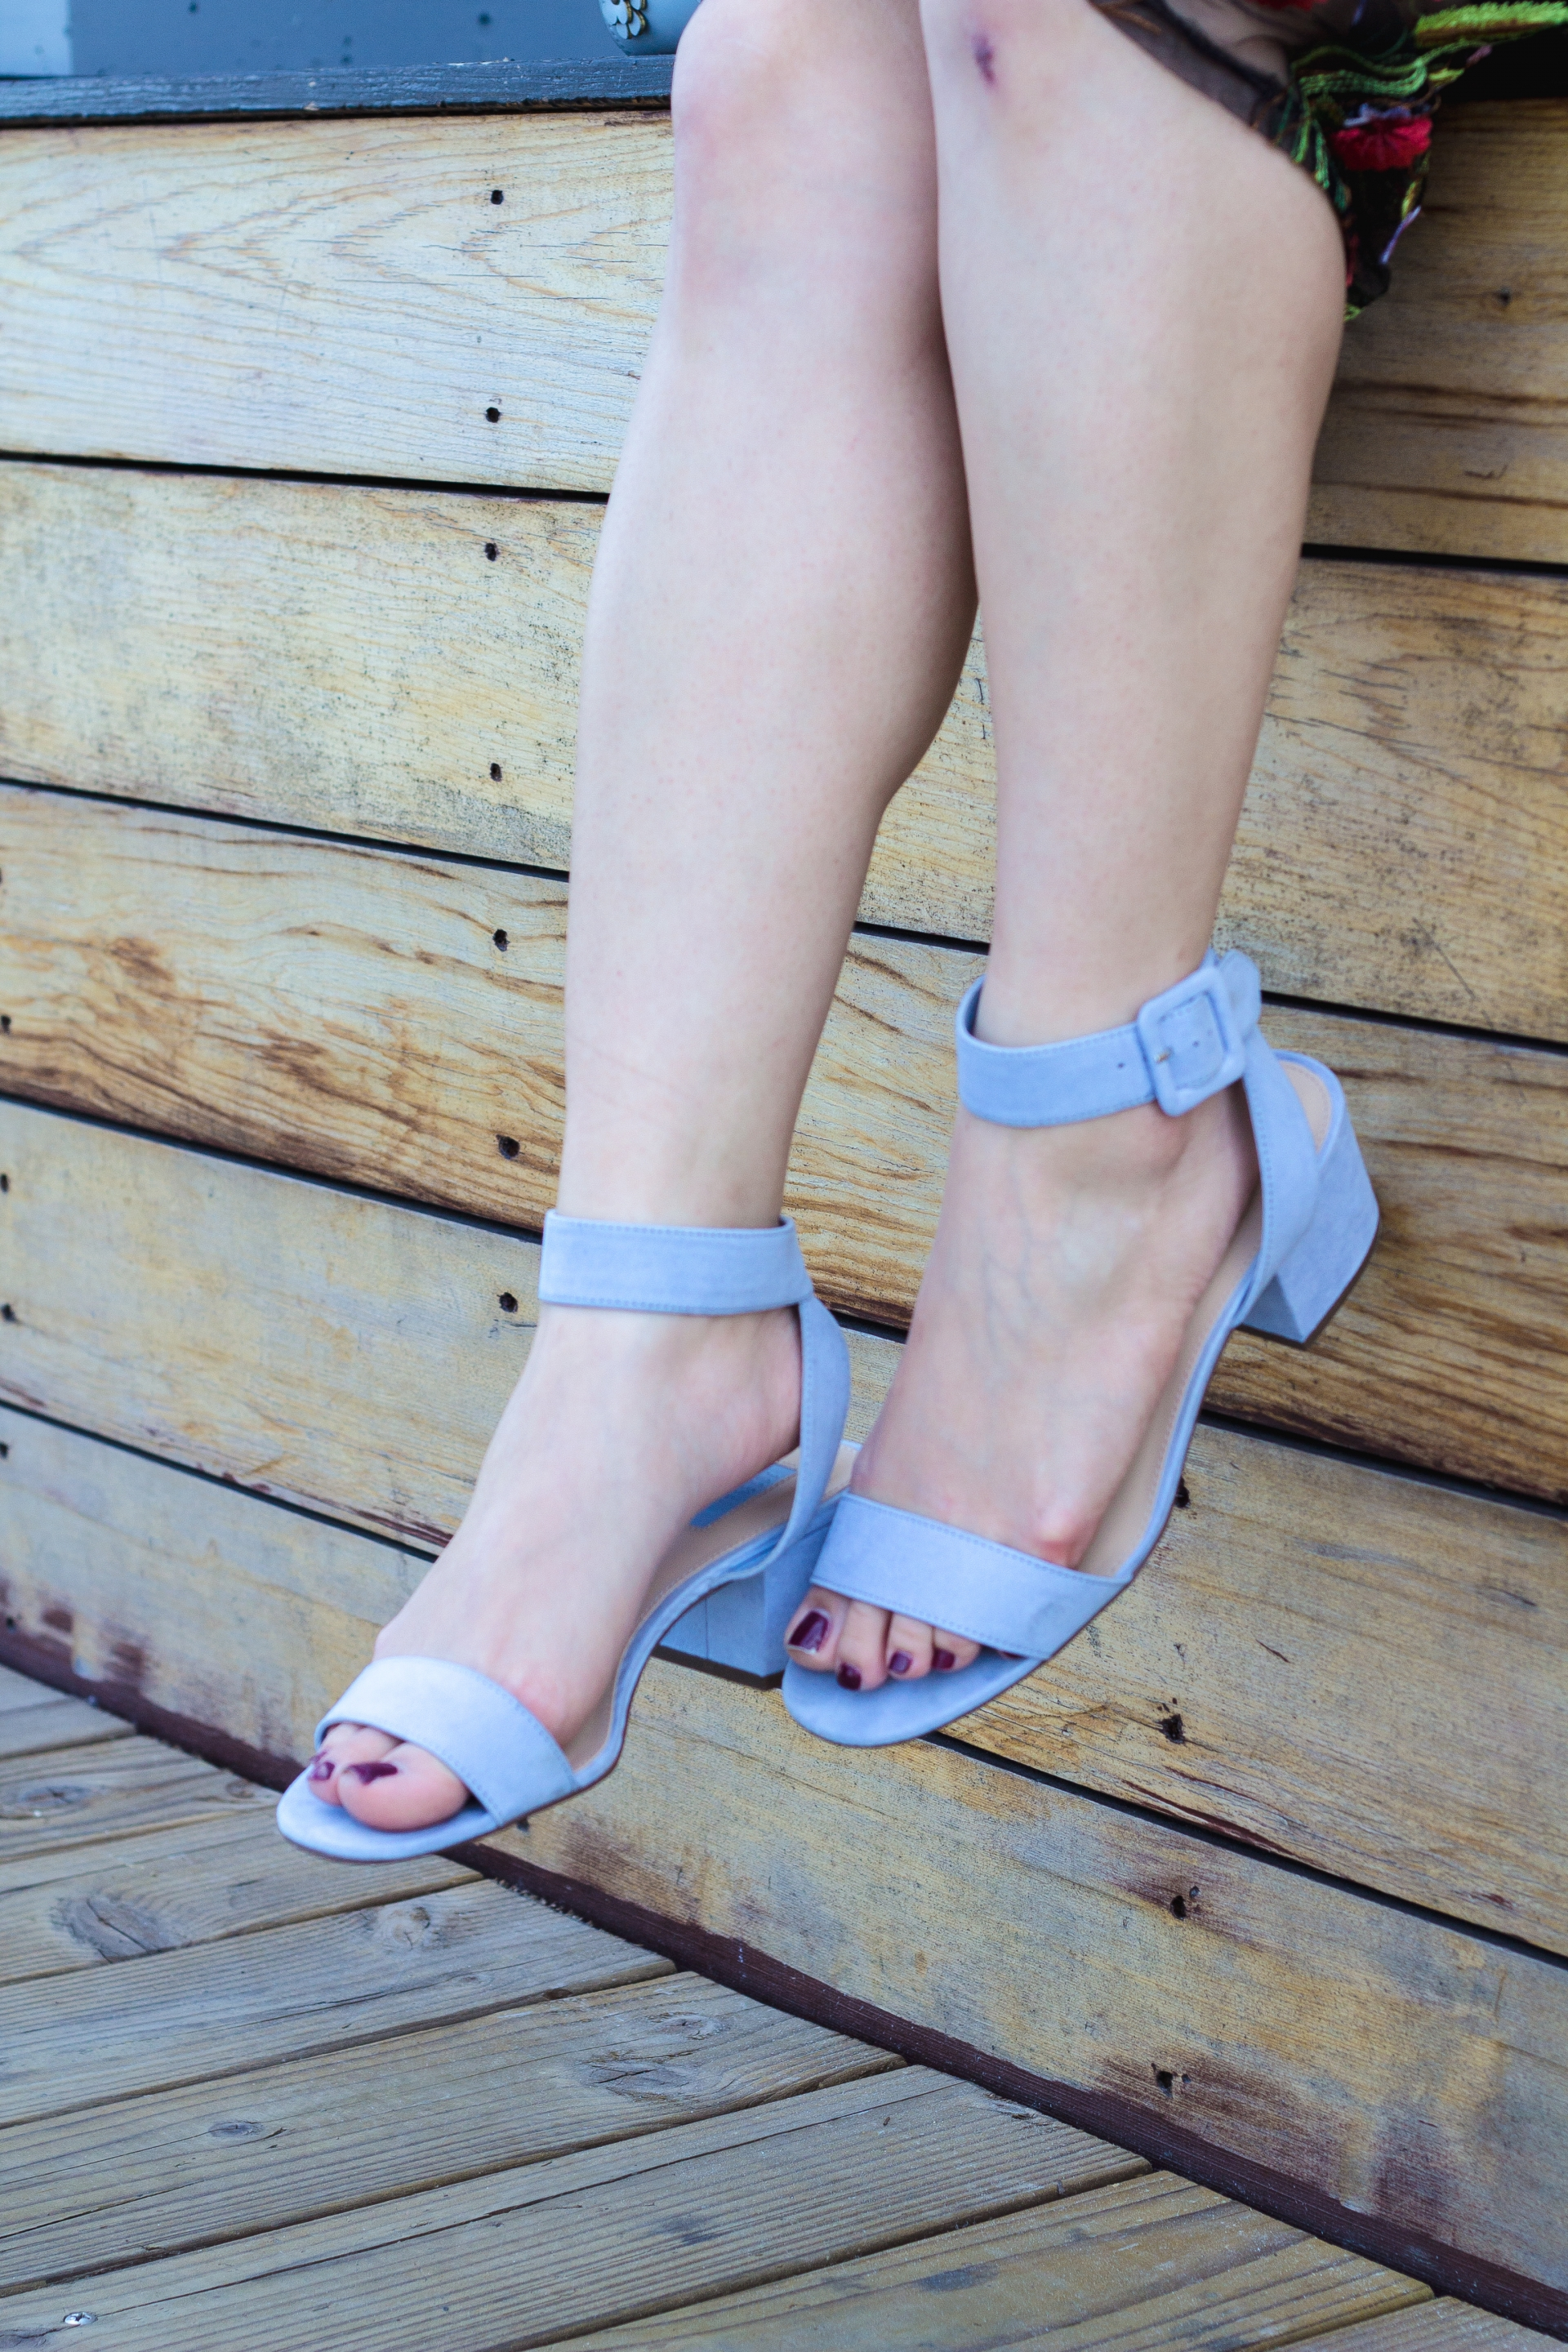 Periwinkle Blue Sandals